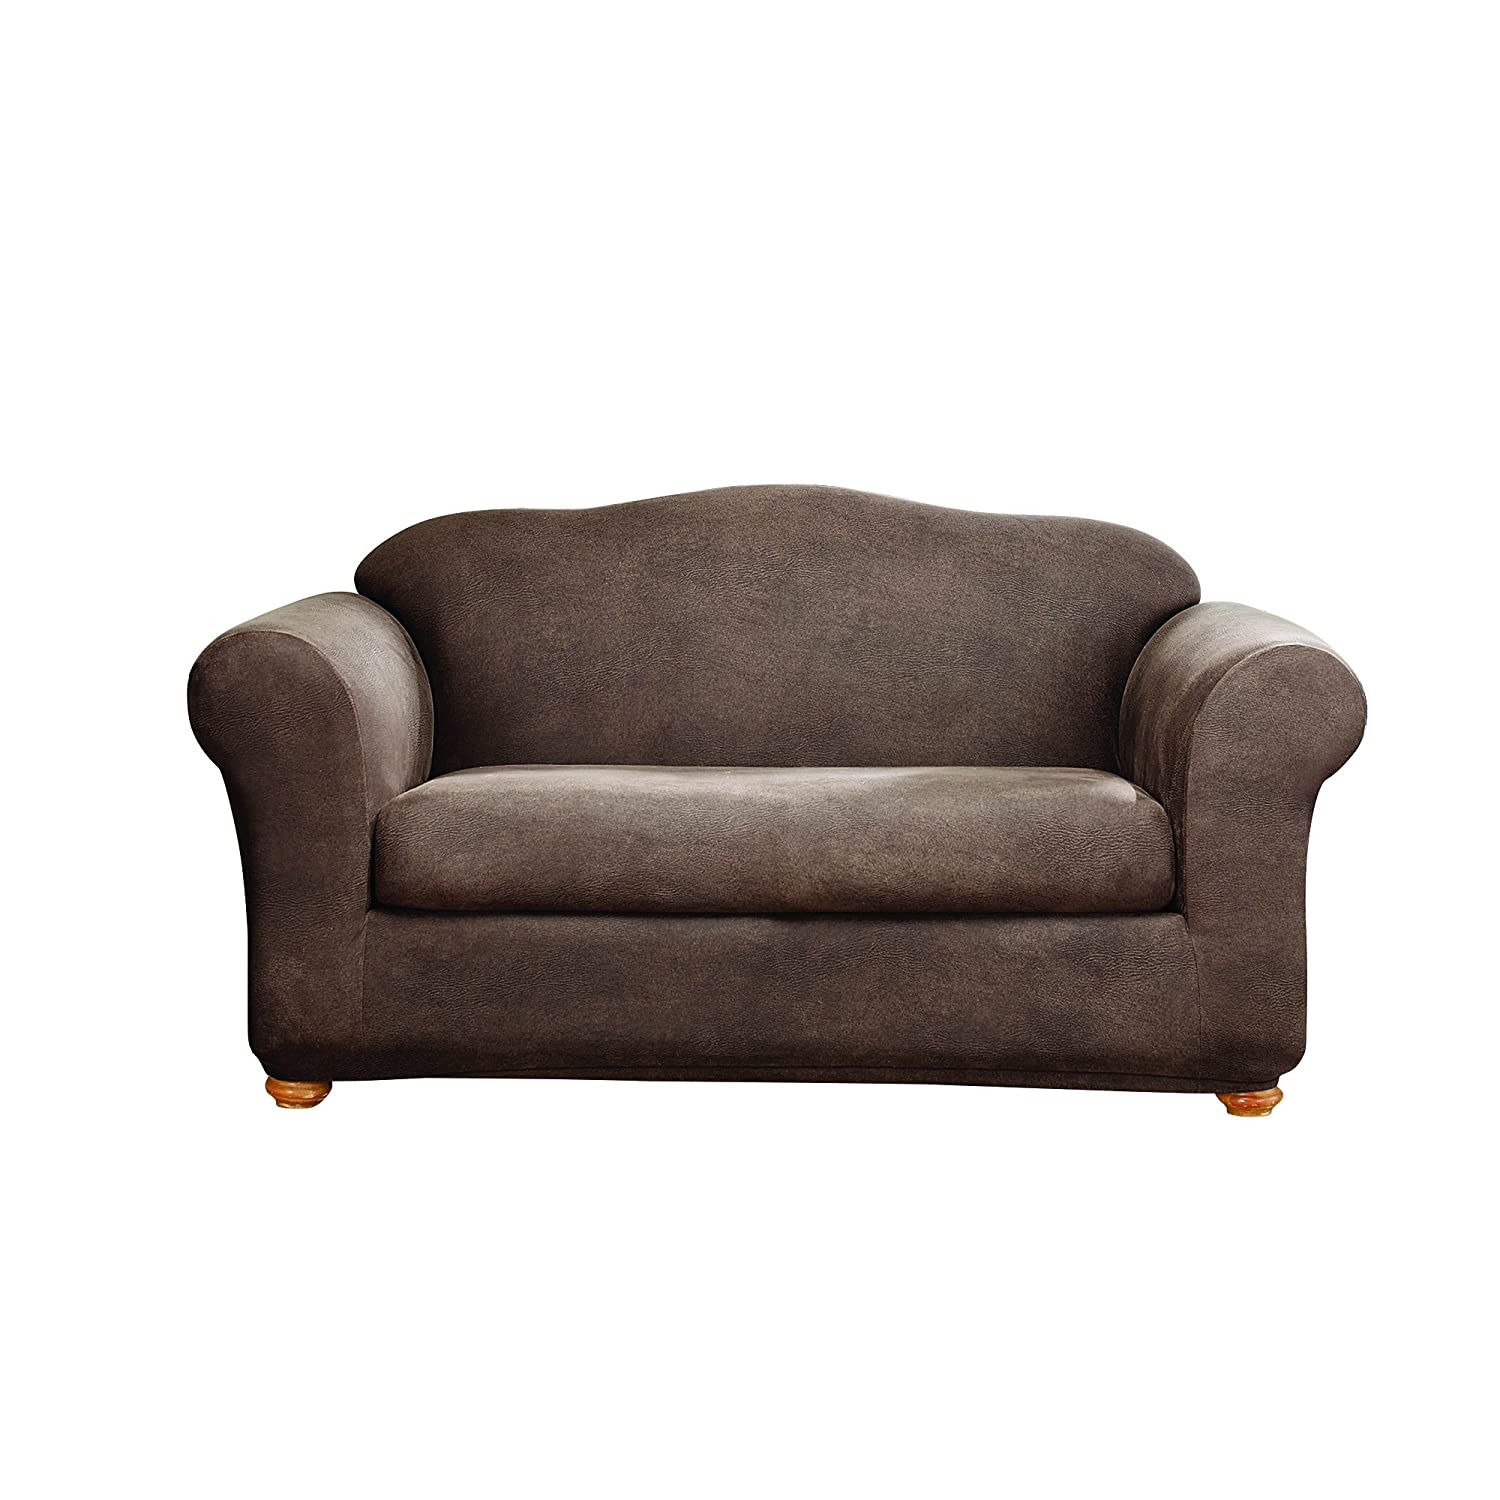 Amazon: Sure Fit Stretch Leather 2-Piece - Sofa Slipcover - Brown  (SF37336): Home & Kitchen